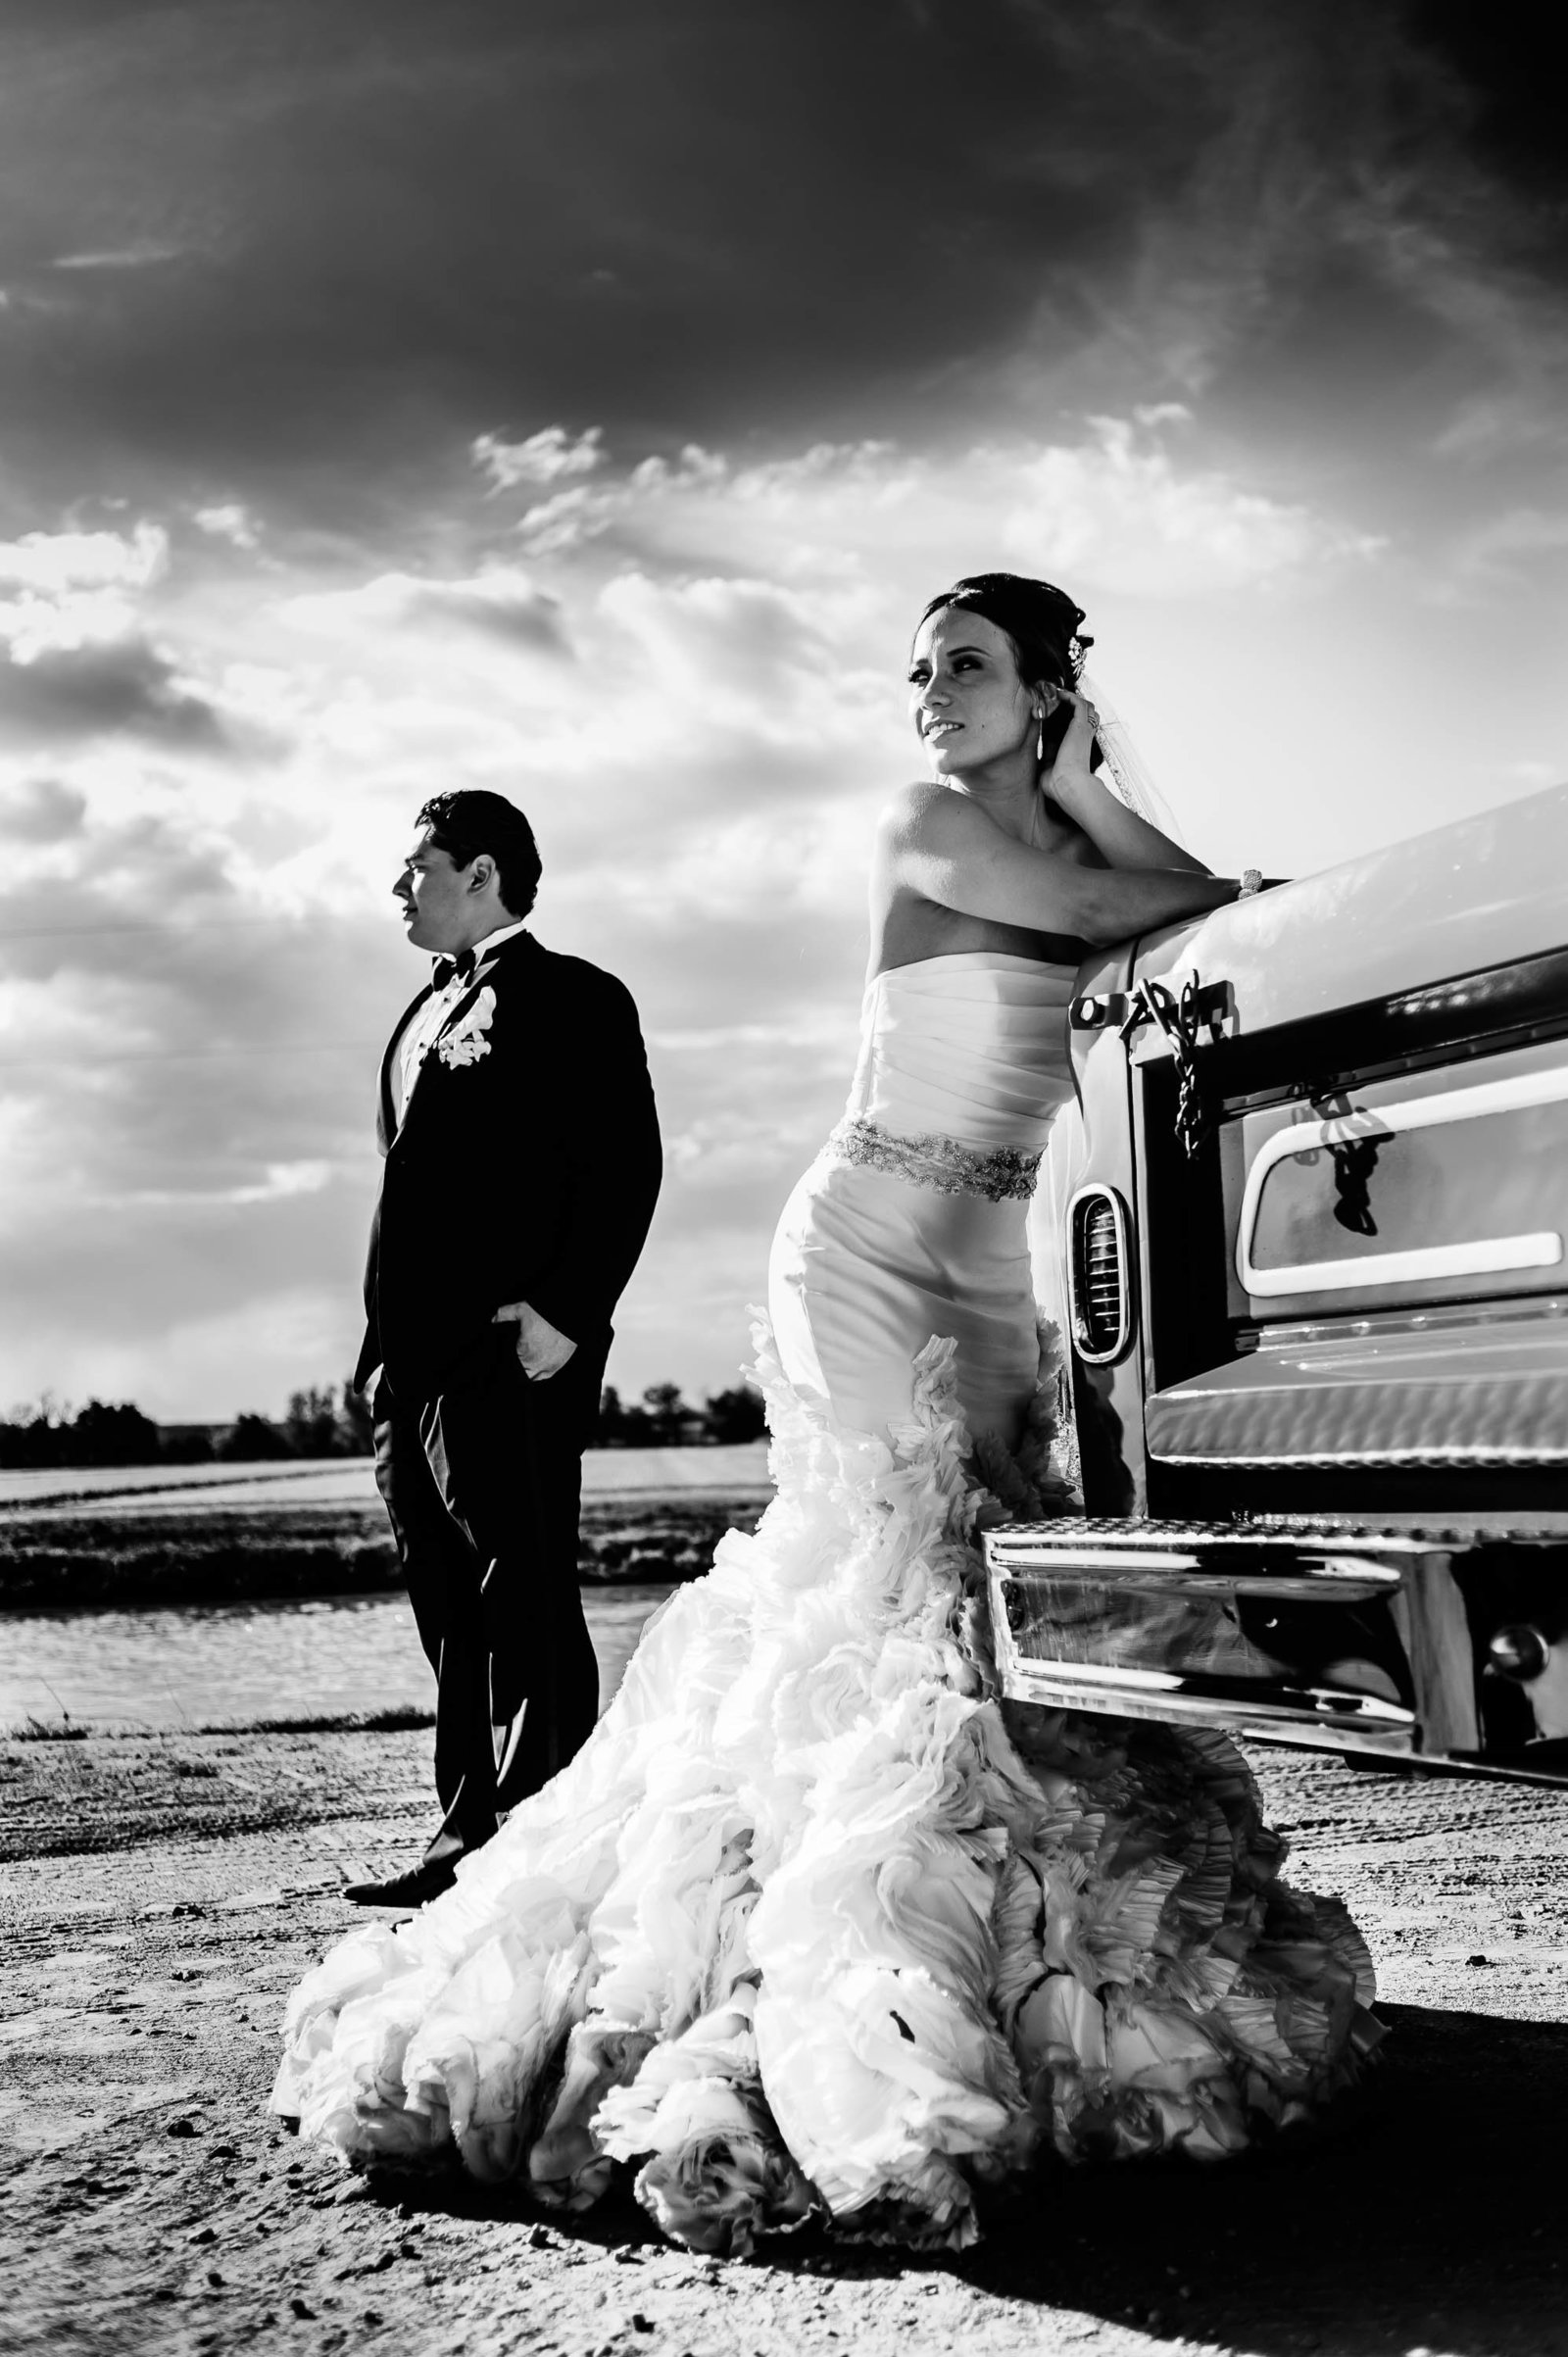 242-El-paso-wedding-photographer-El Paso Wedding Photographer_P45